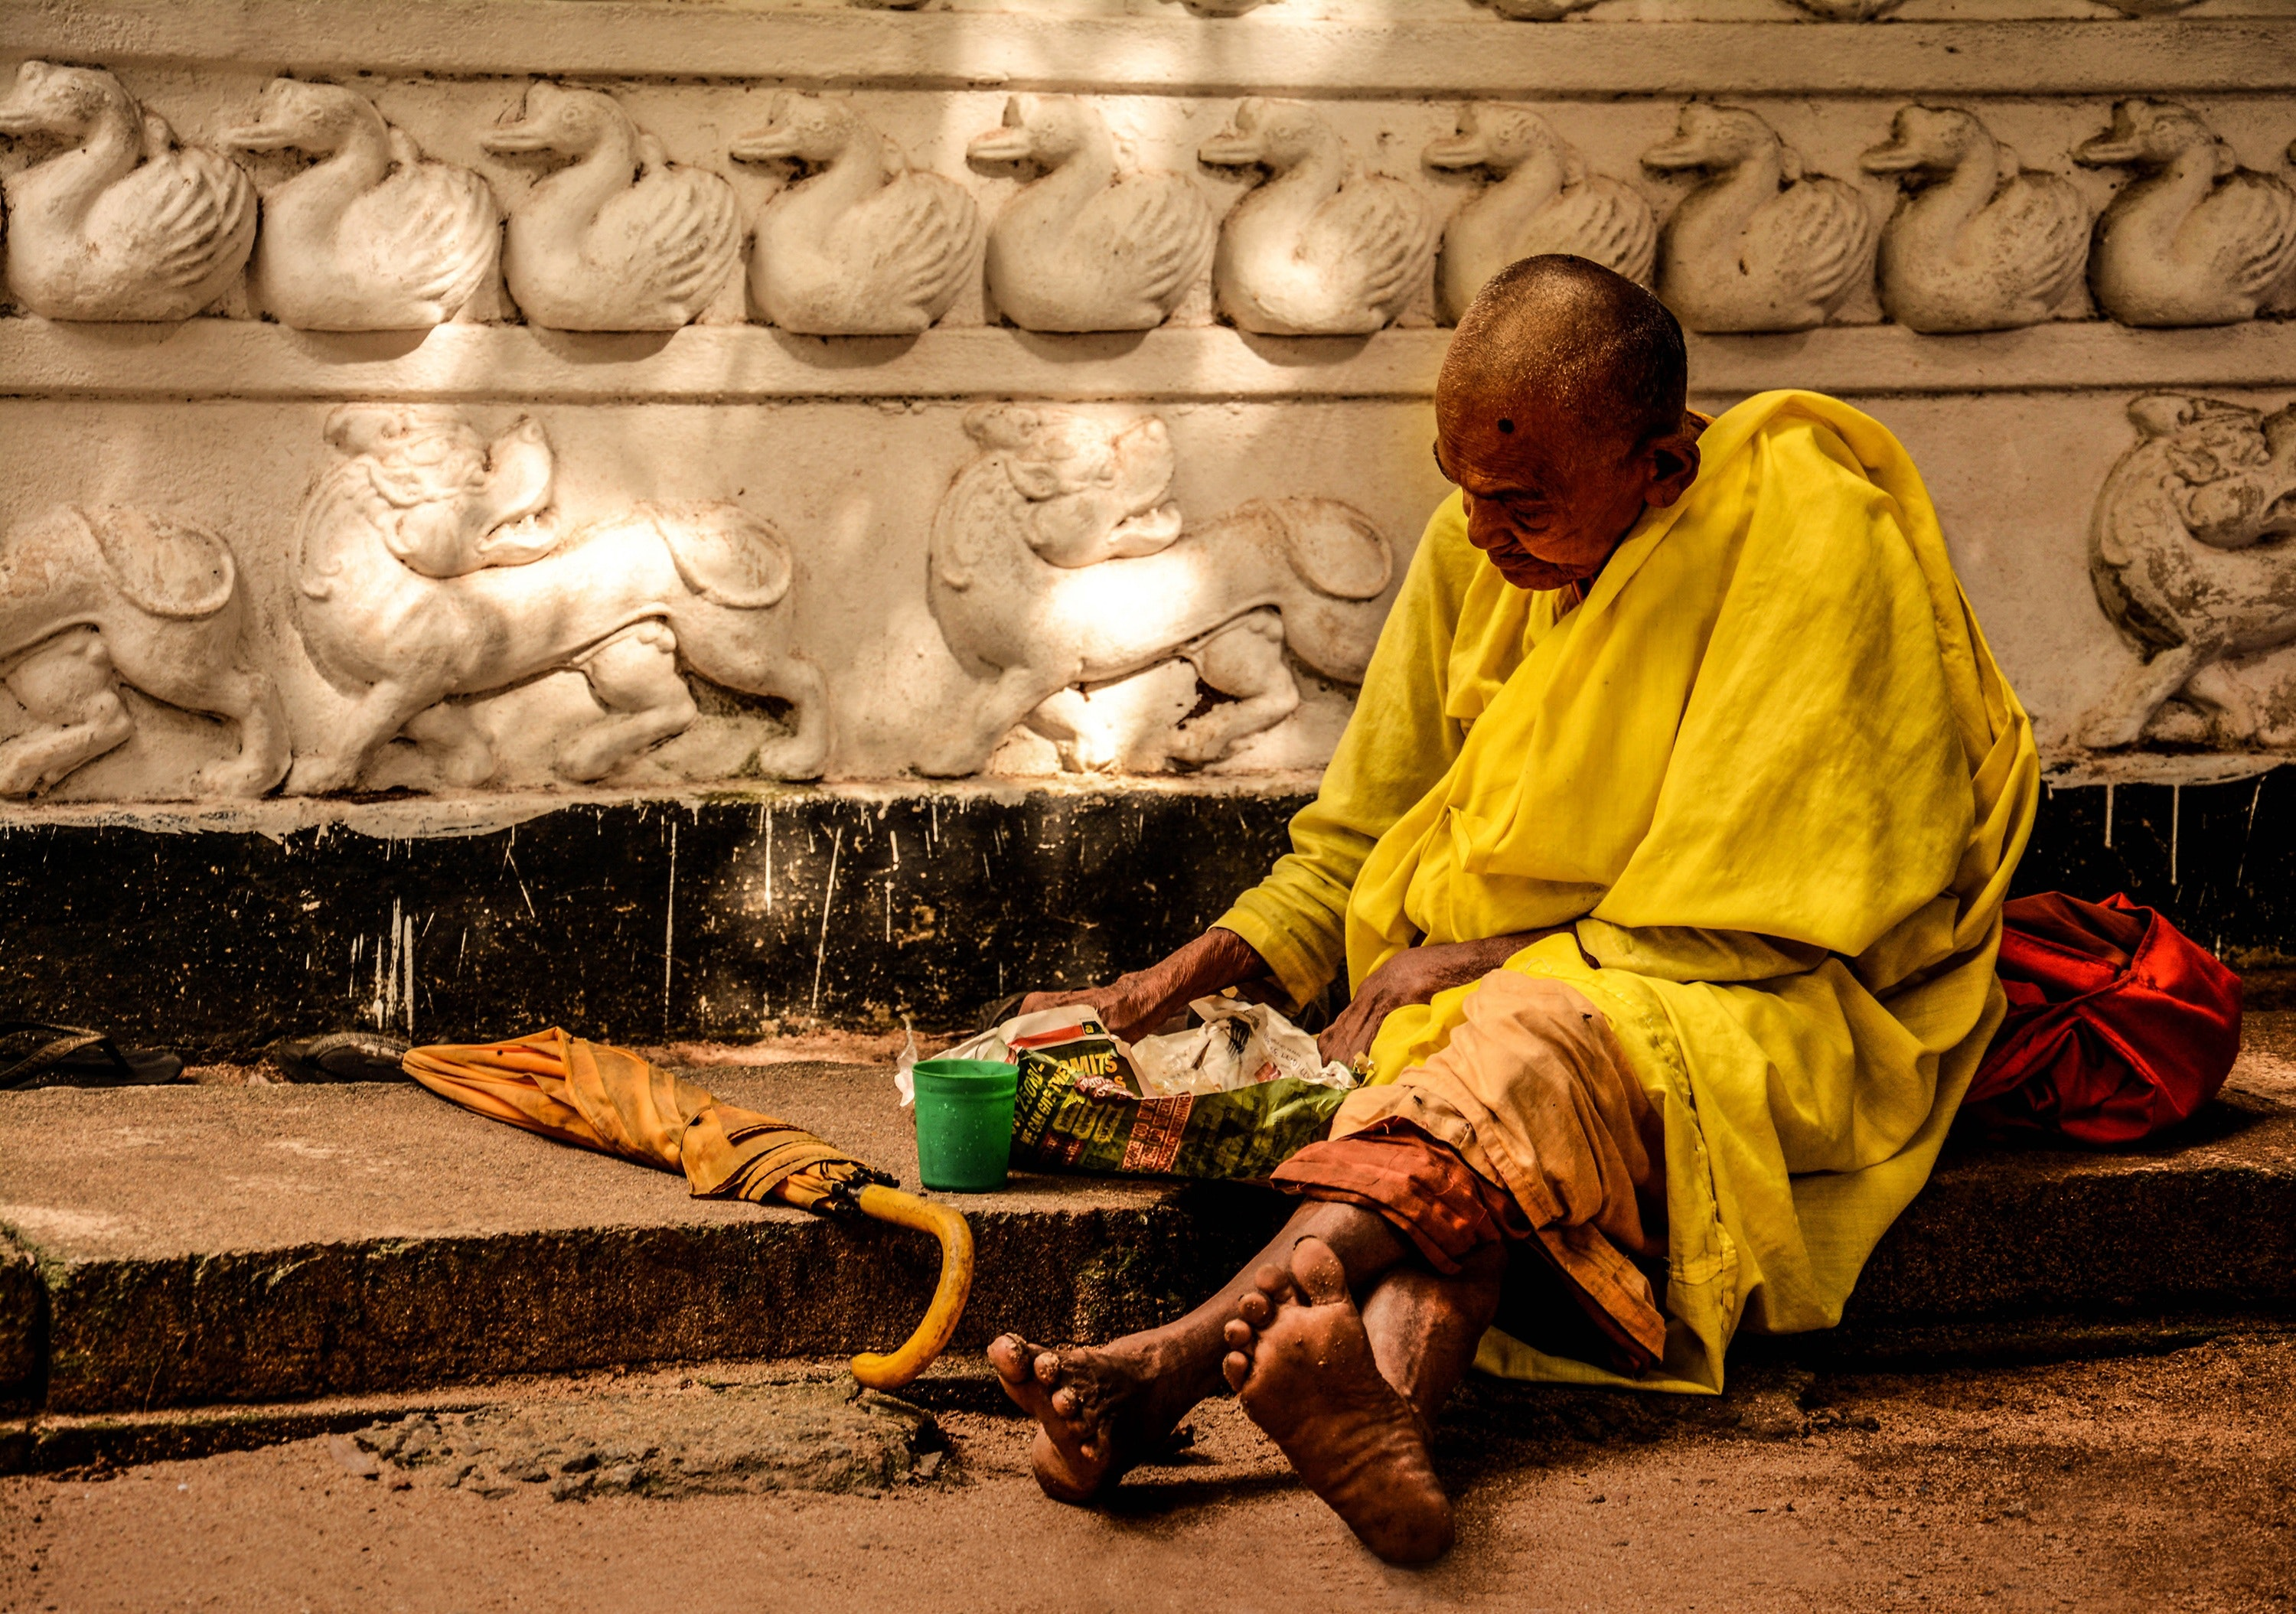 Man in Yellow Sitting Outside during Daytime, Sad, Poverty, Religion, Street, HQ Photo